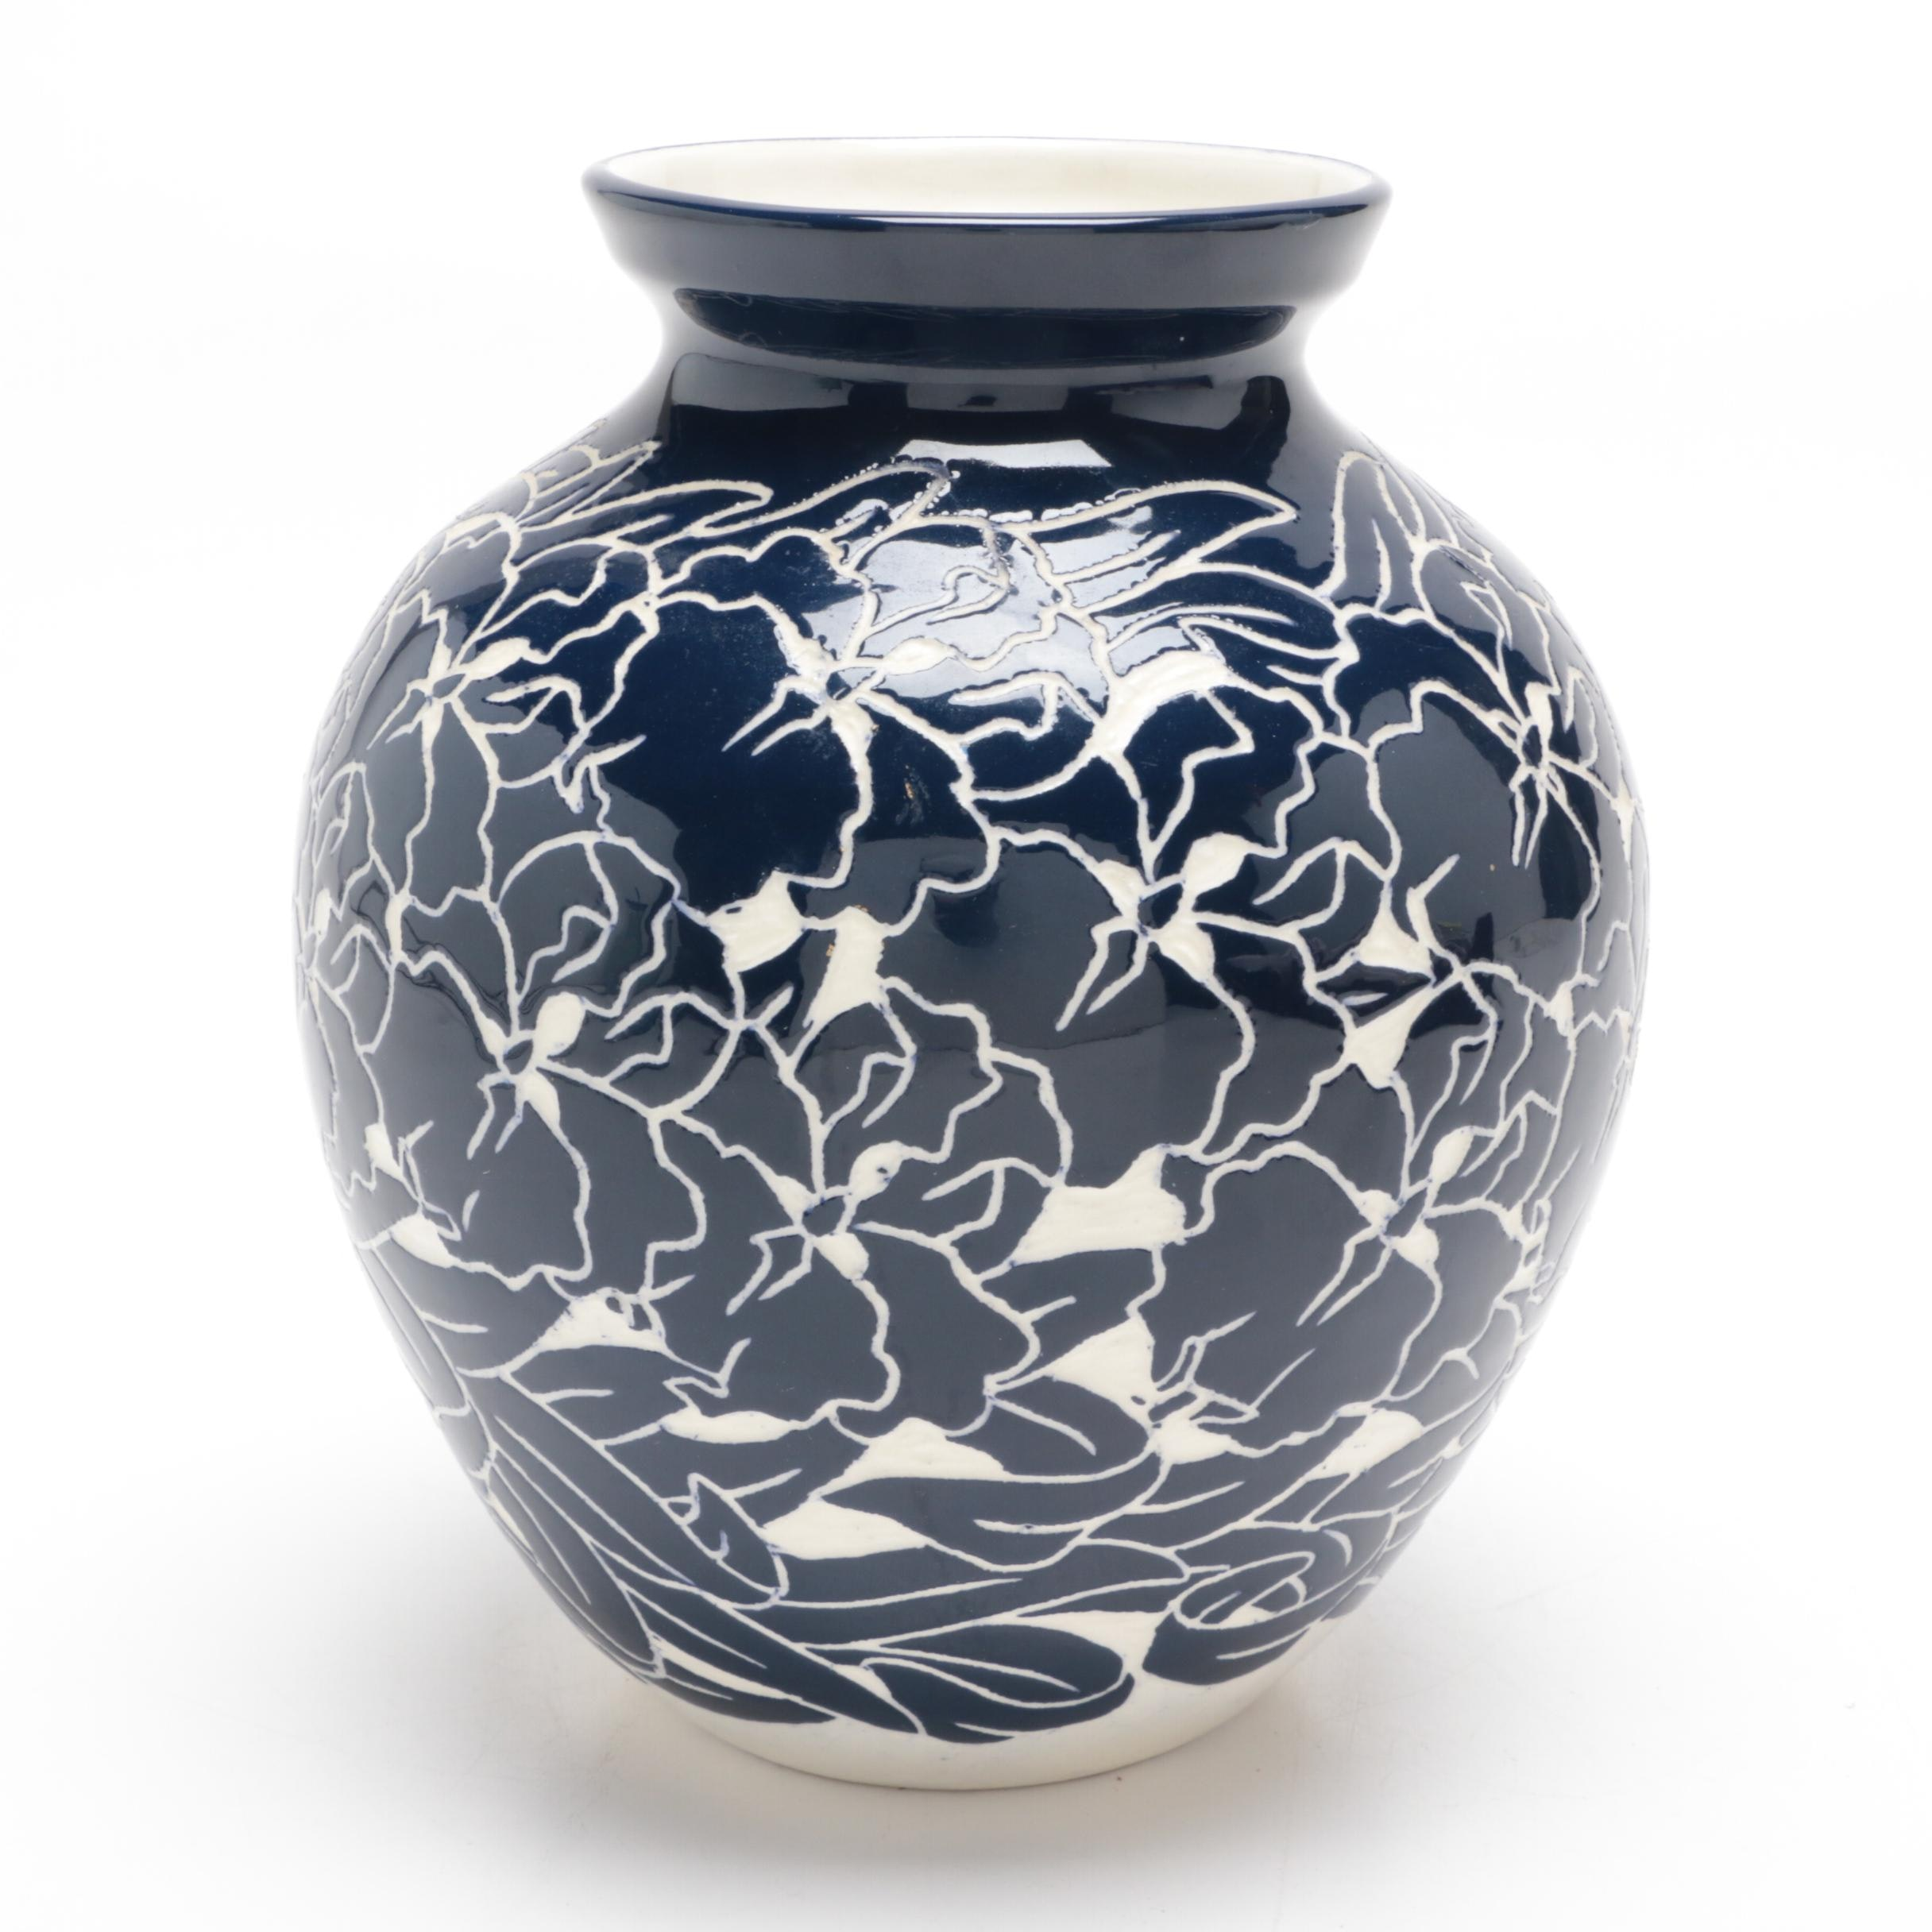 Ken Tracy Porcelain Sgraffito Vase, Late 20th Century